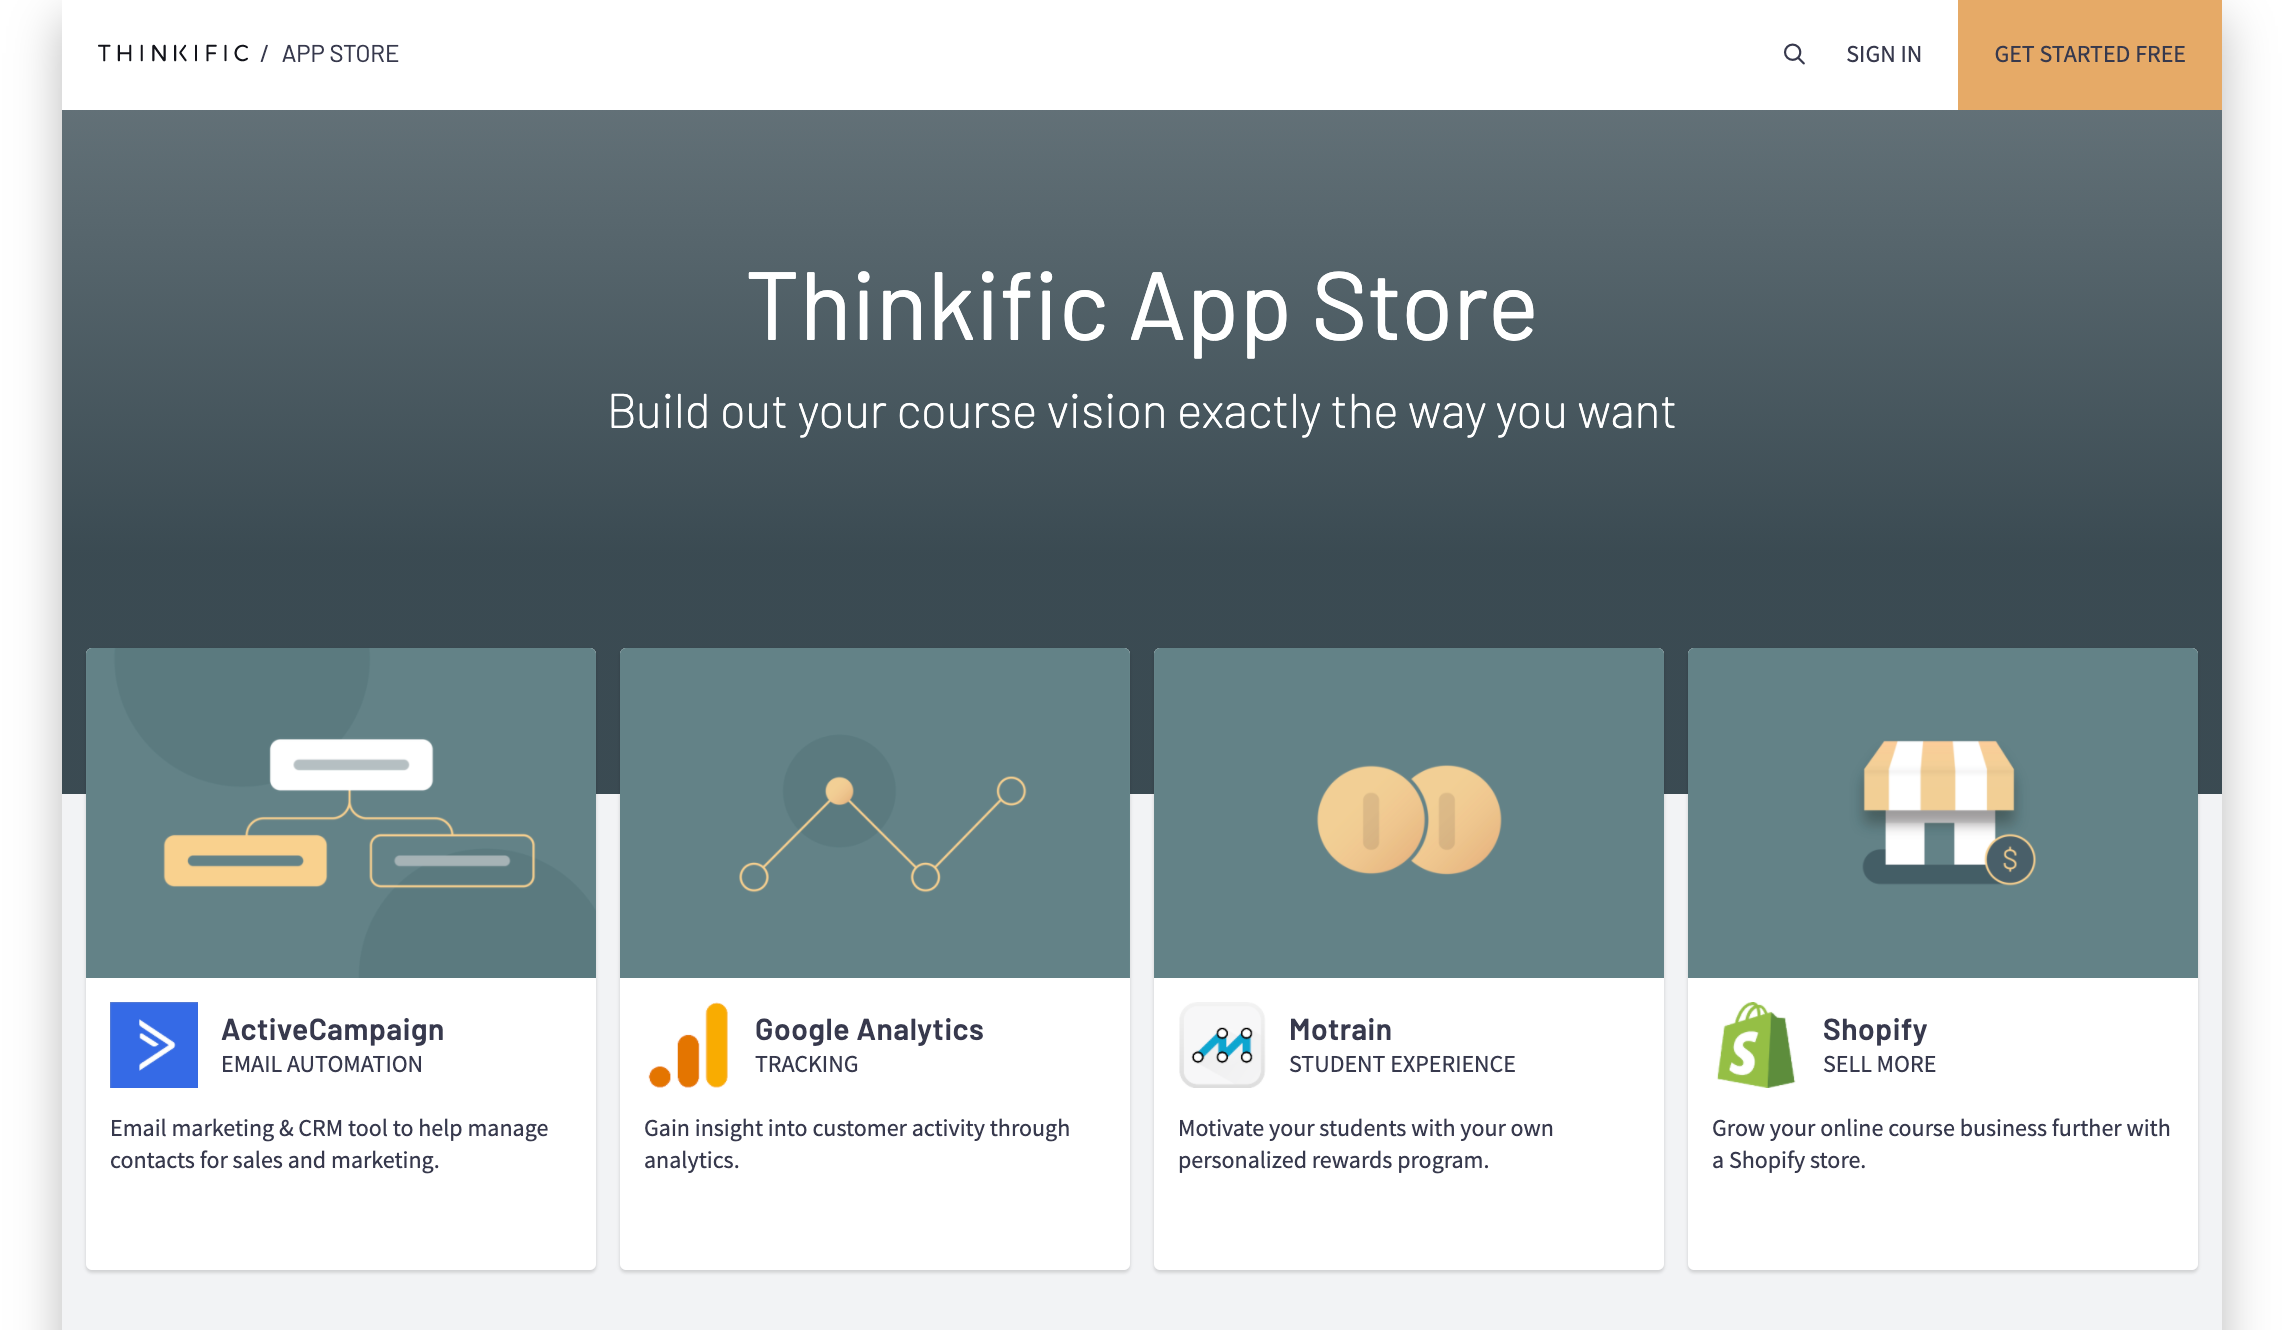 Thinkific Software - Now with the launch of the Thinkific App Store,  you can educate your customers, sell courses or engage your audience with value-added content exactly the way you want.